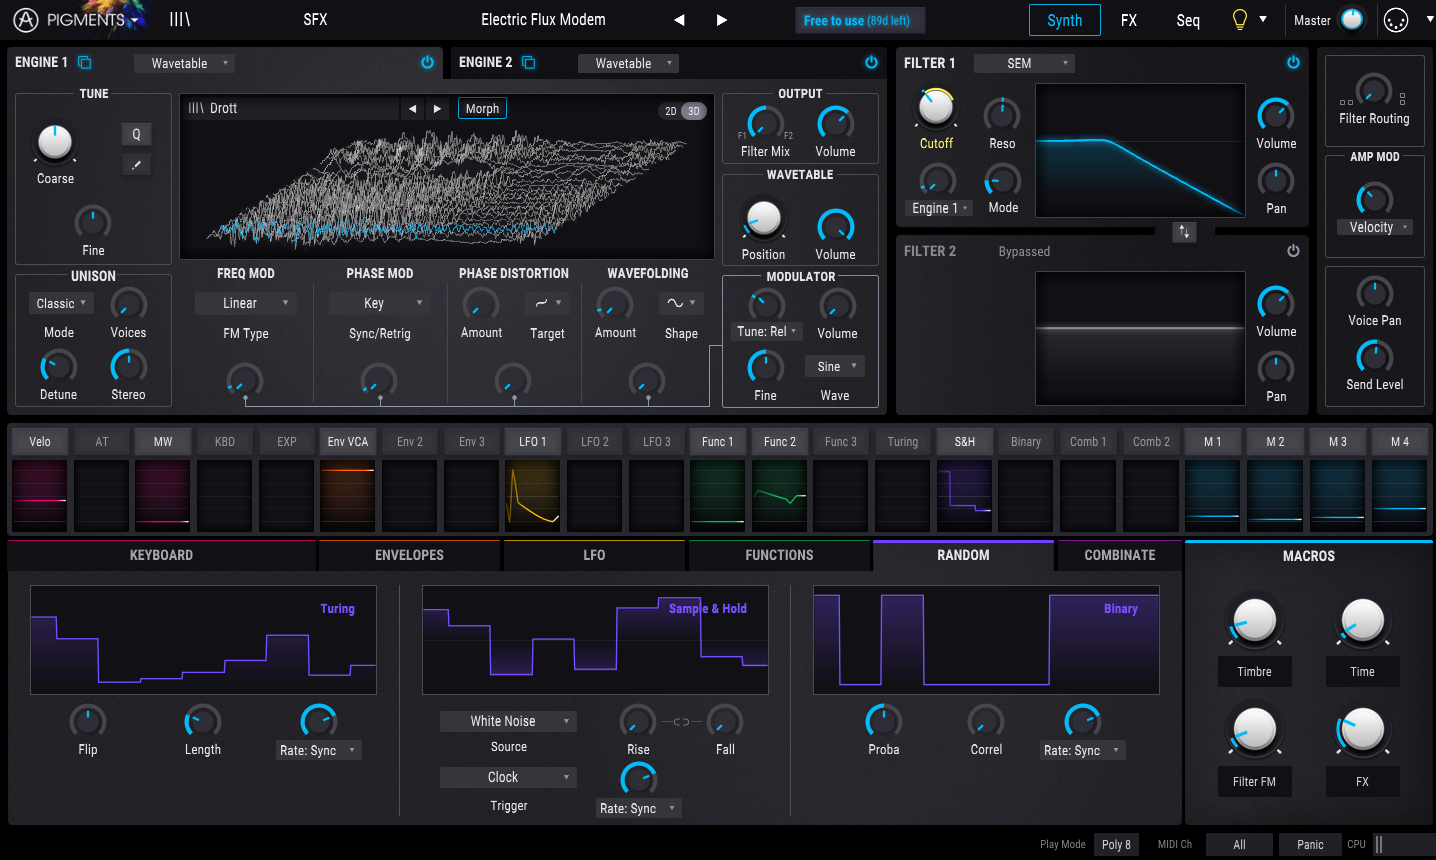 Pigments is a new hybrid synth from Arturia, and you can try it free now